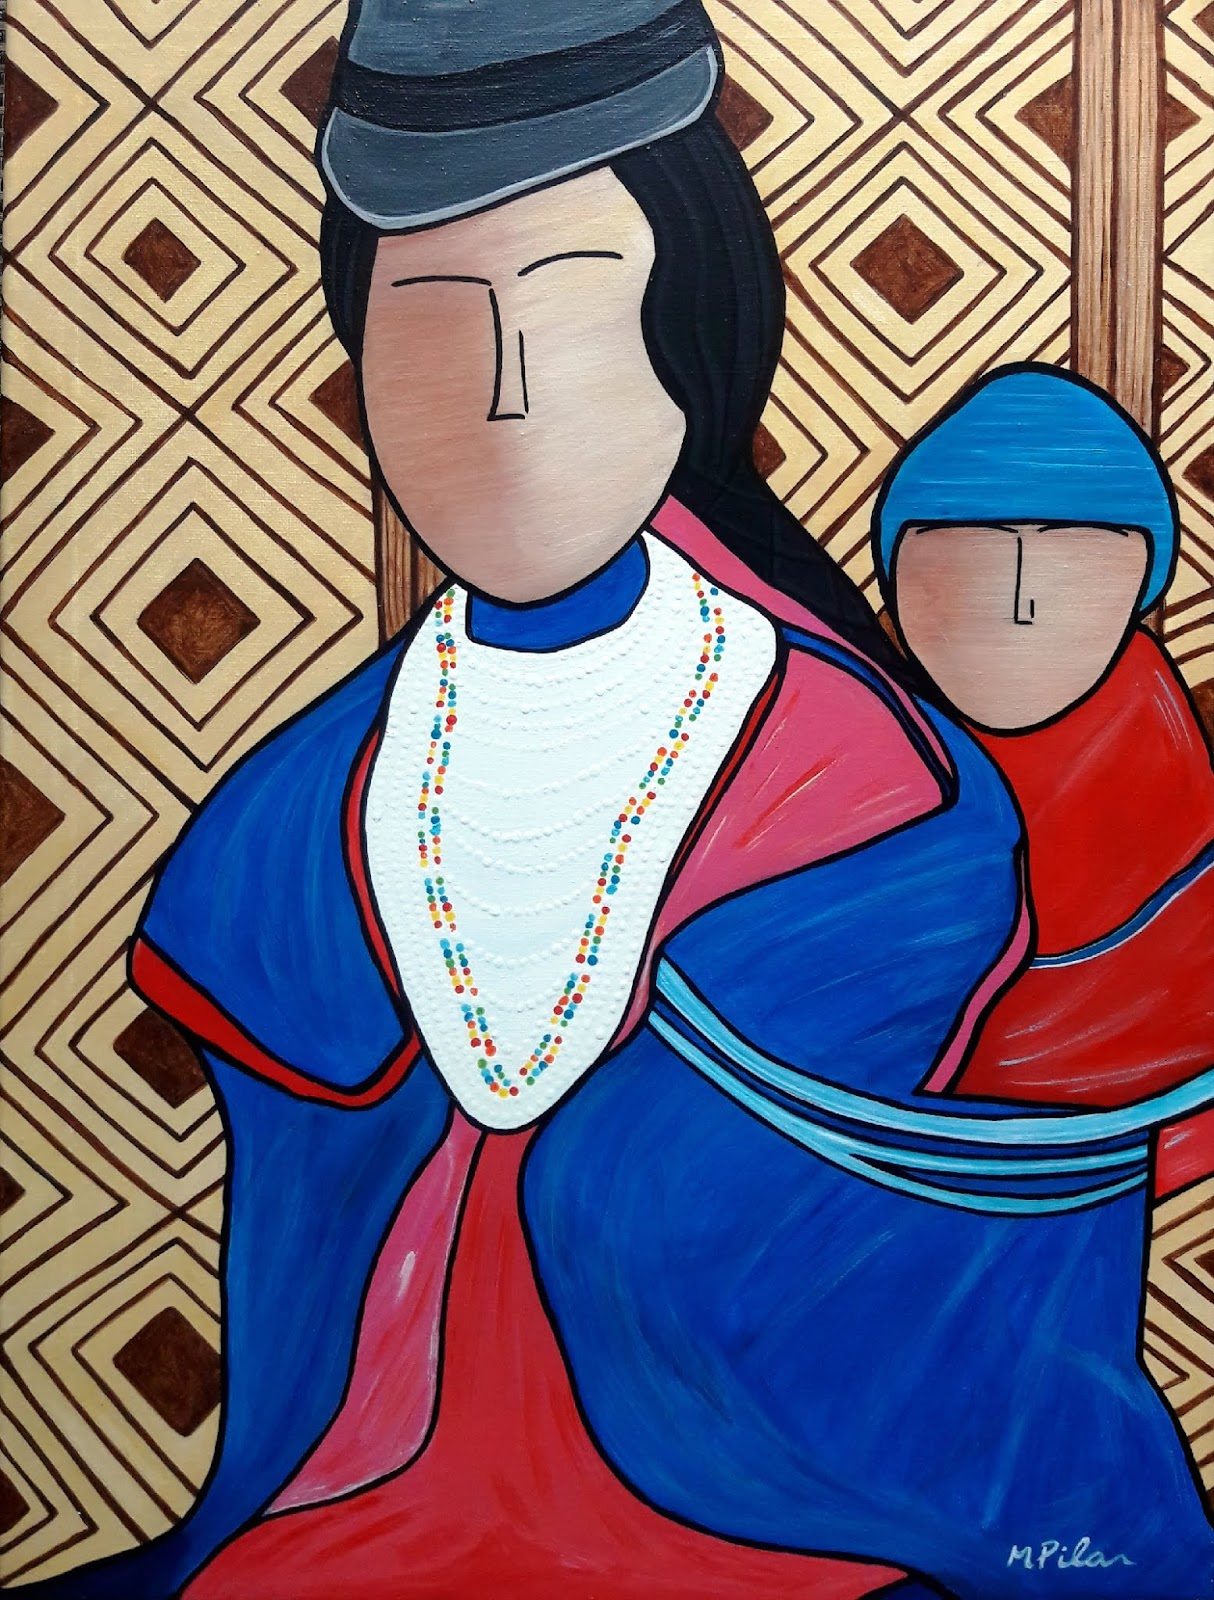 Acrylic Red and Blue Painting on Canvas with Mother and Child by Pilar Vargas